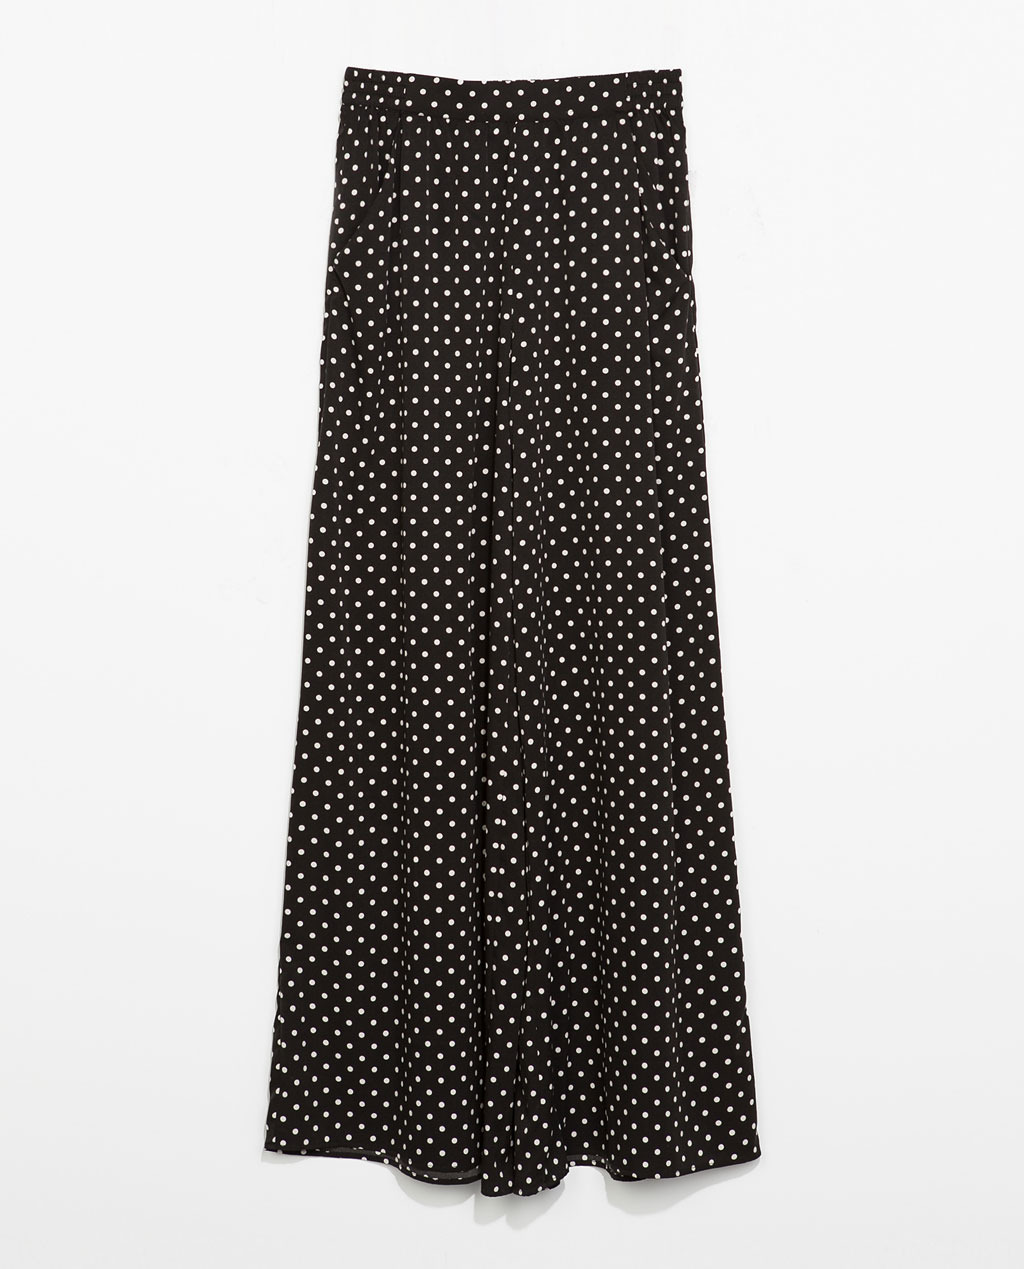 Wide Leg Polka Dot Trousers - length: standard; style: palazzo; pattern: polka dot; waist: mid/regular rise; secondary colour: white; predominant colour: black; occasions: casual, holiday, creative work; fibres: polyester/polyamide - 100%; fit: wide leg; pattern type: fabric; texture group: woven light midweight; season: s/s 2014; trends: monochrome; pattern size: standard (bottom)